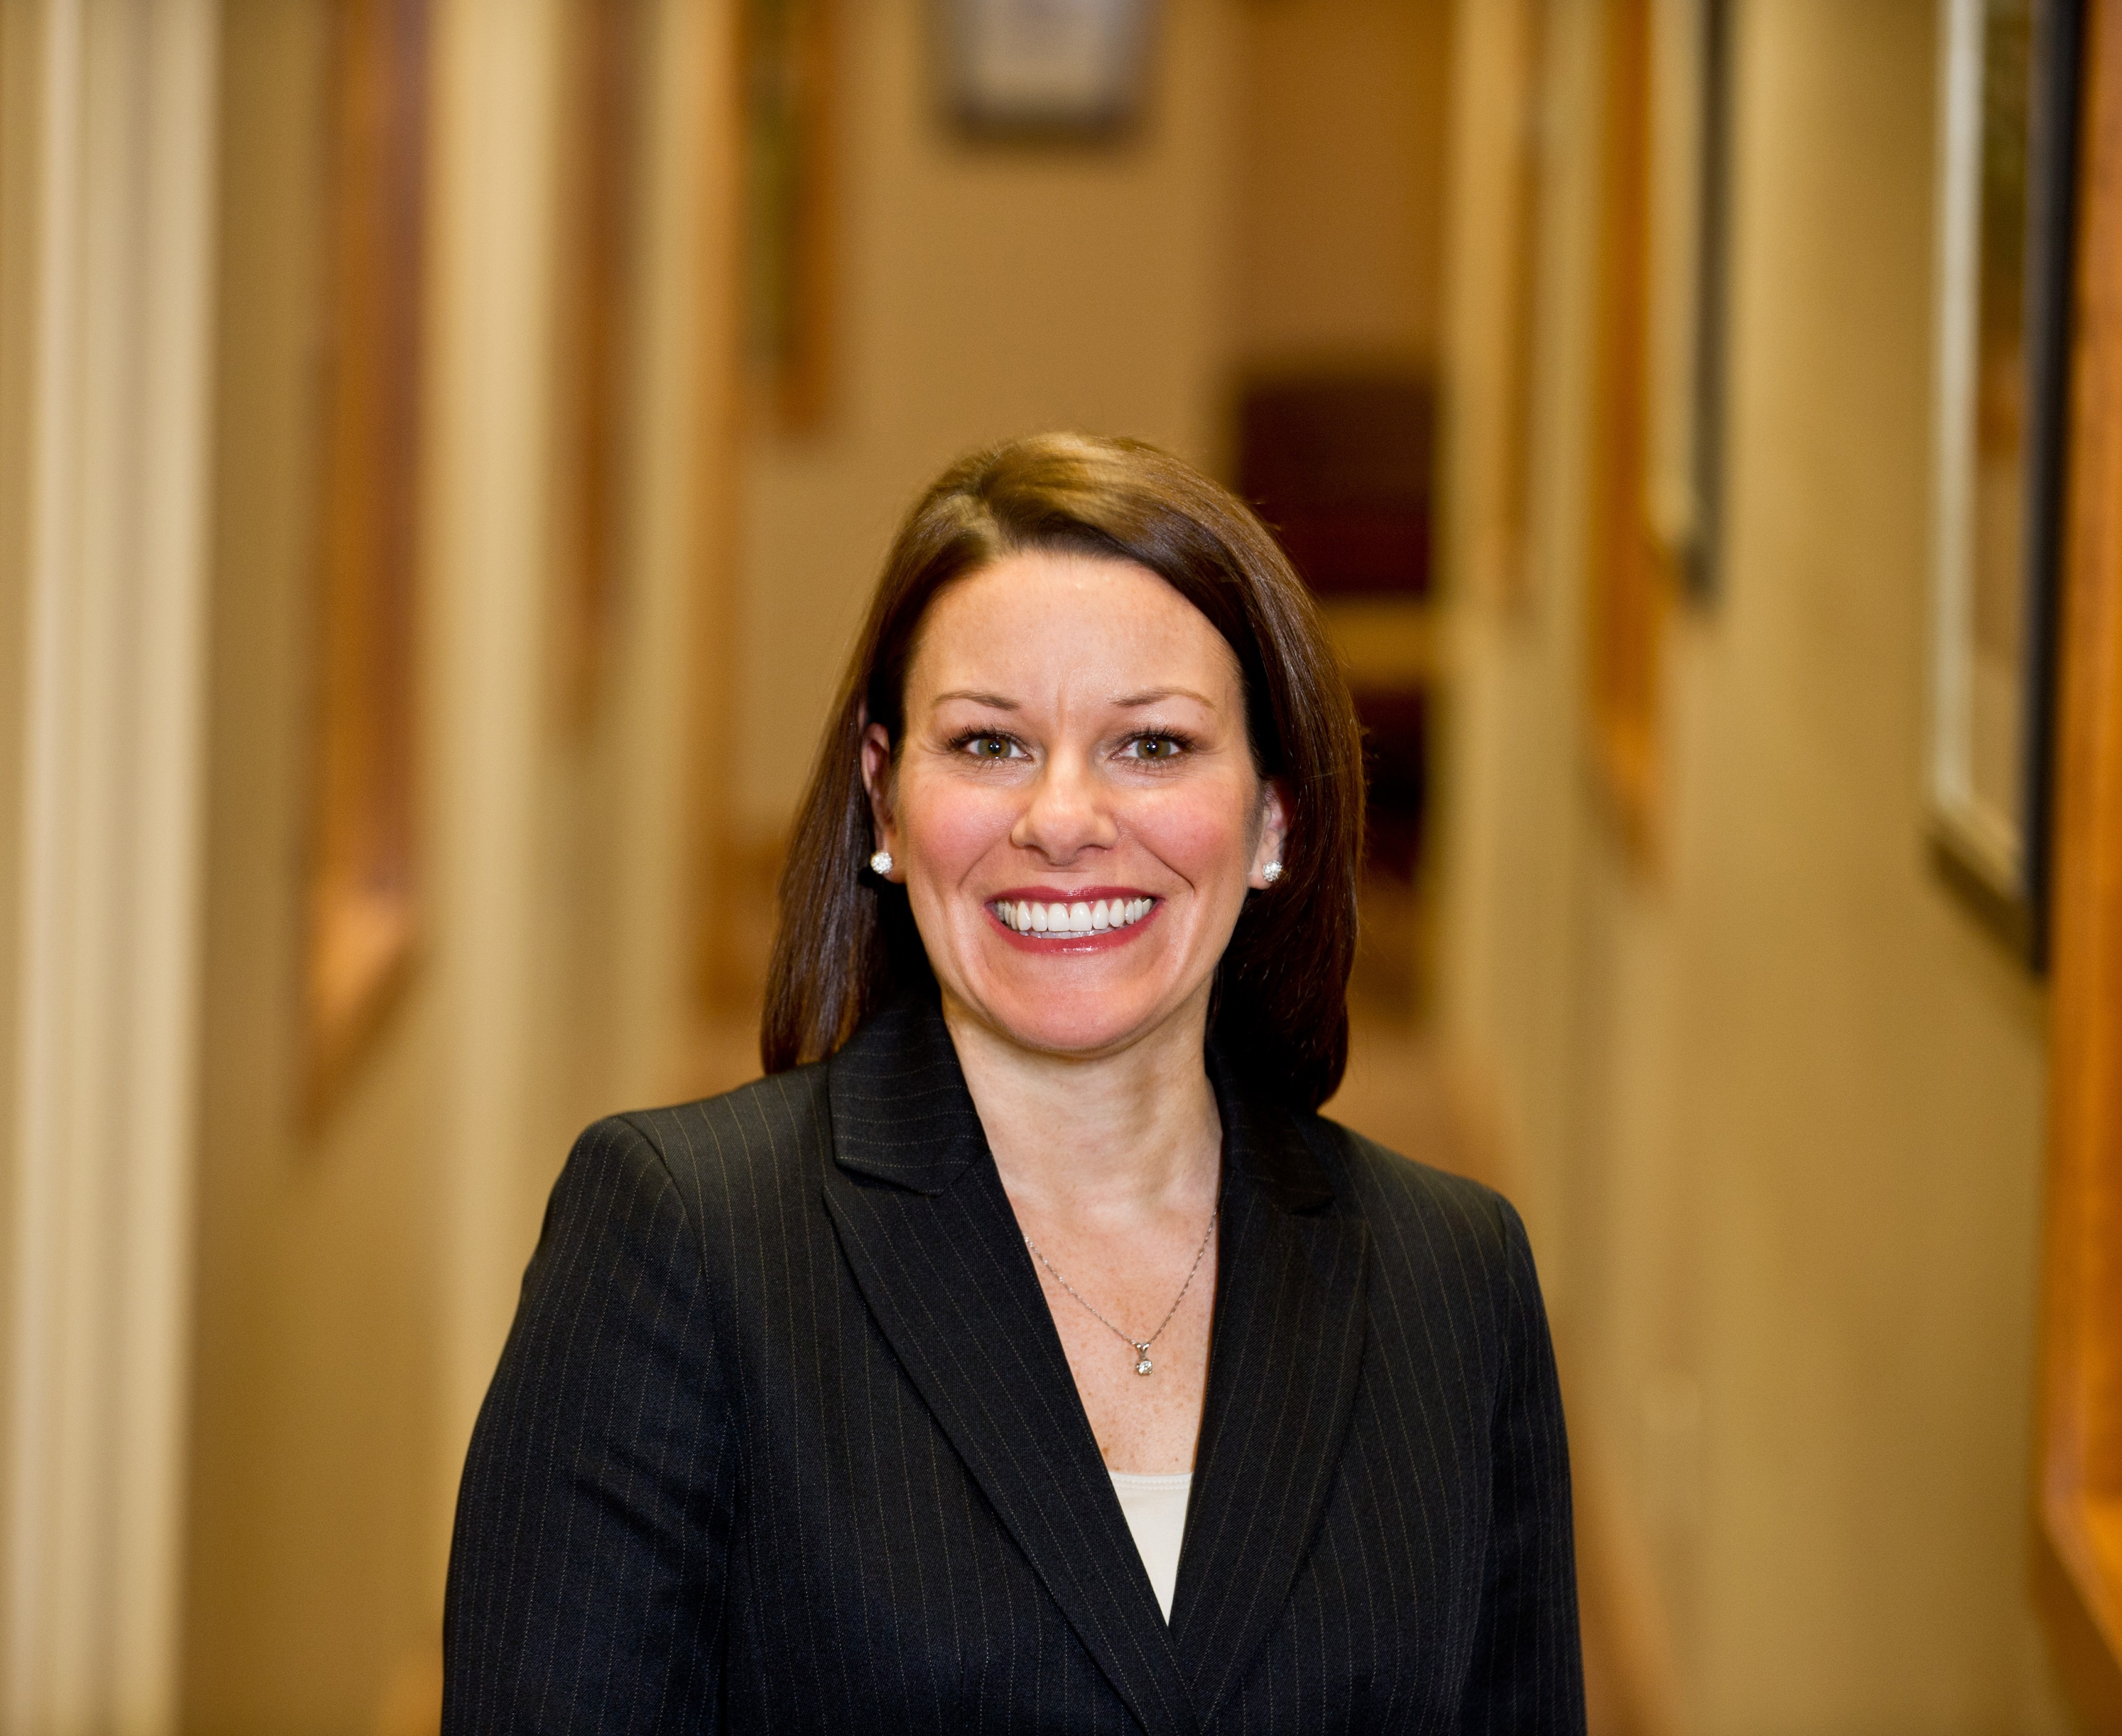 Strategicpoint S Christine H Canapari Earns Chartered Financial Consultant Chfc Designation